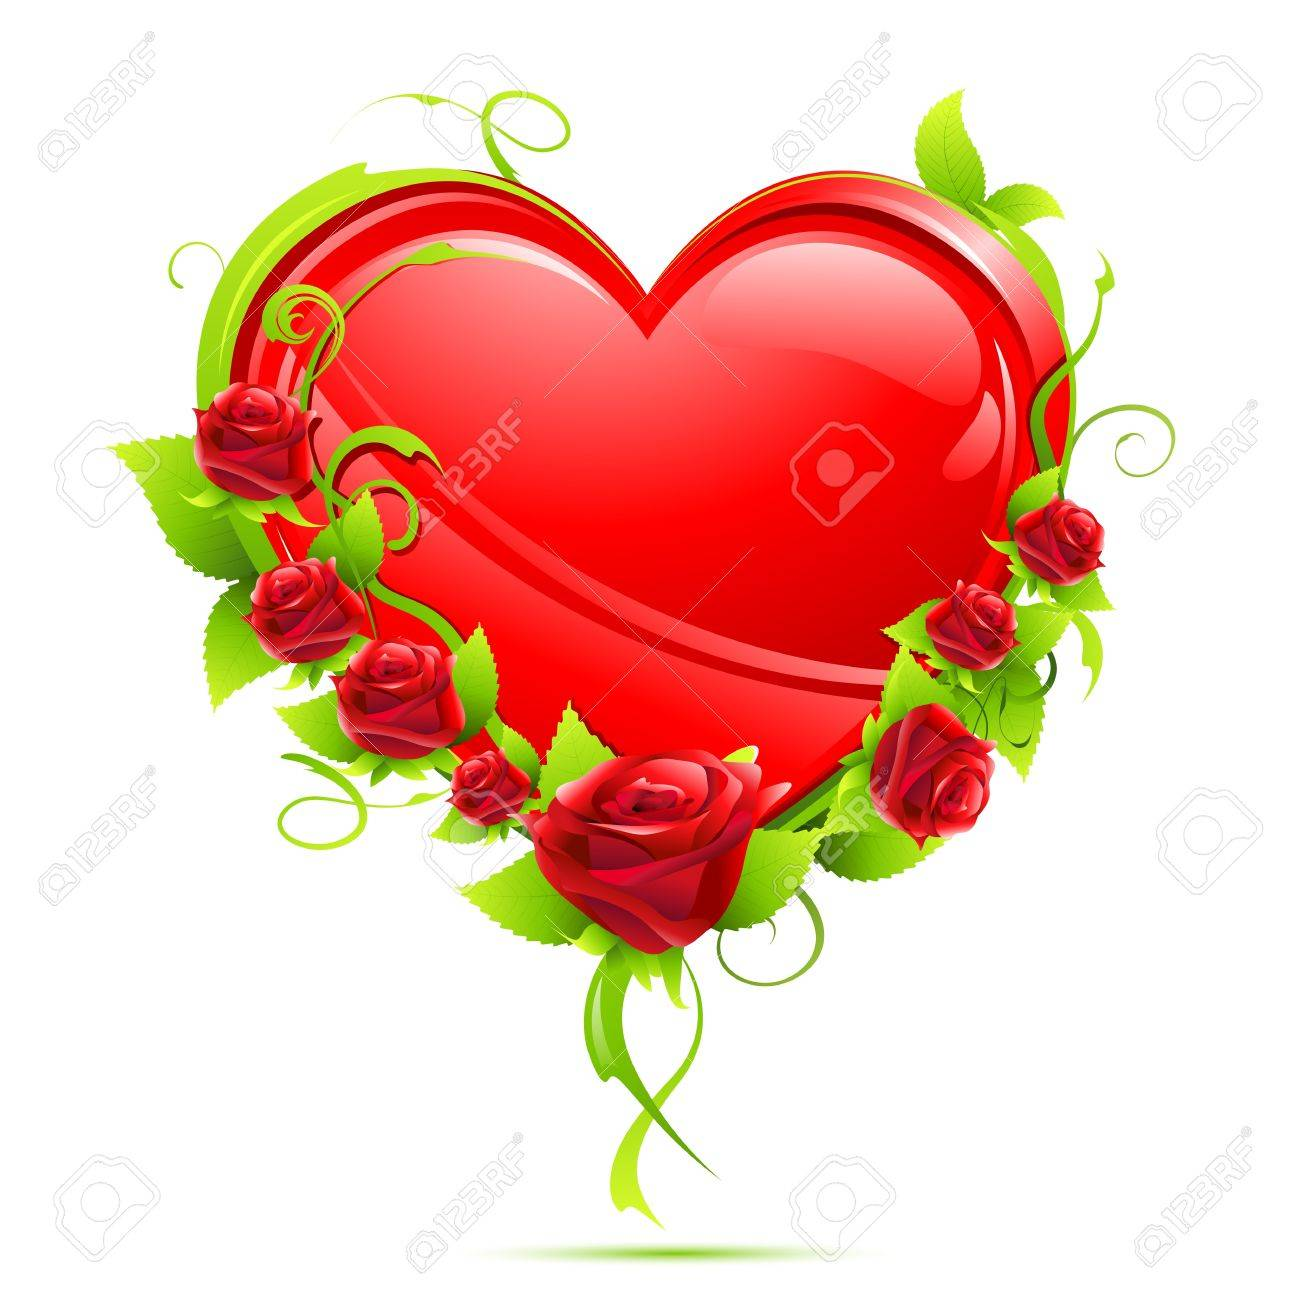 Heart with Roses Stock Vector - 8778230